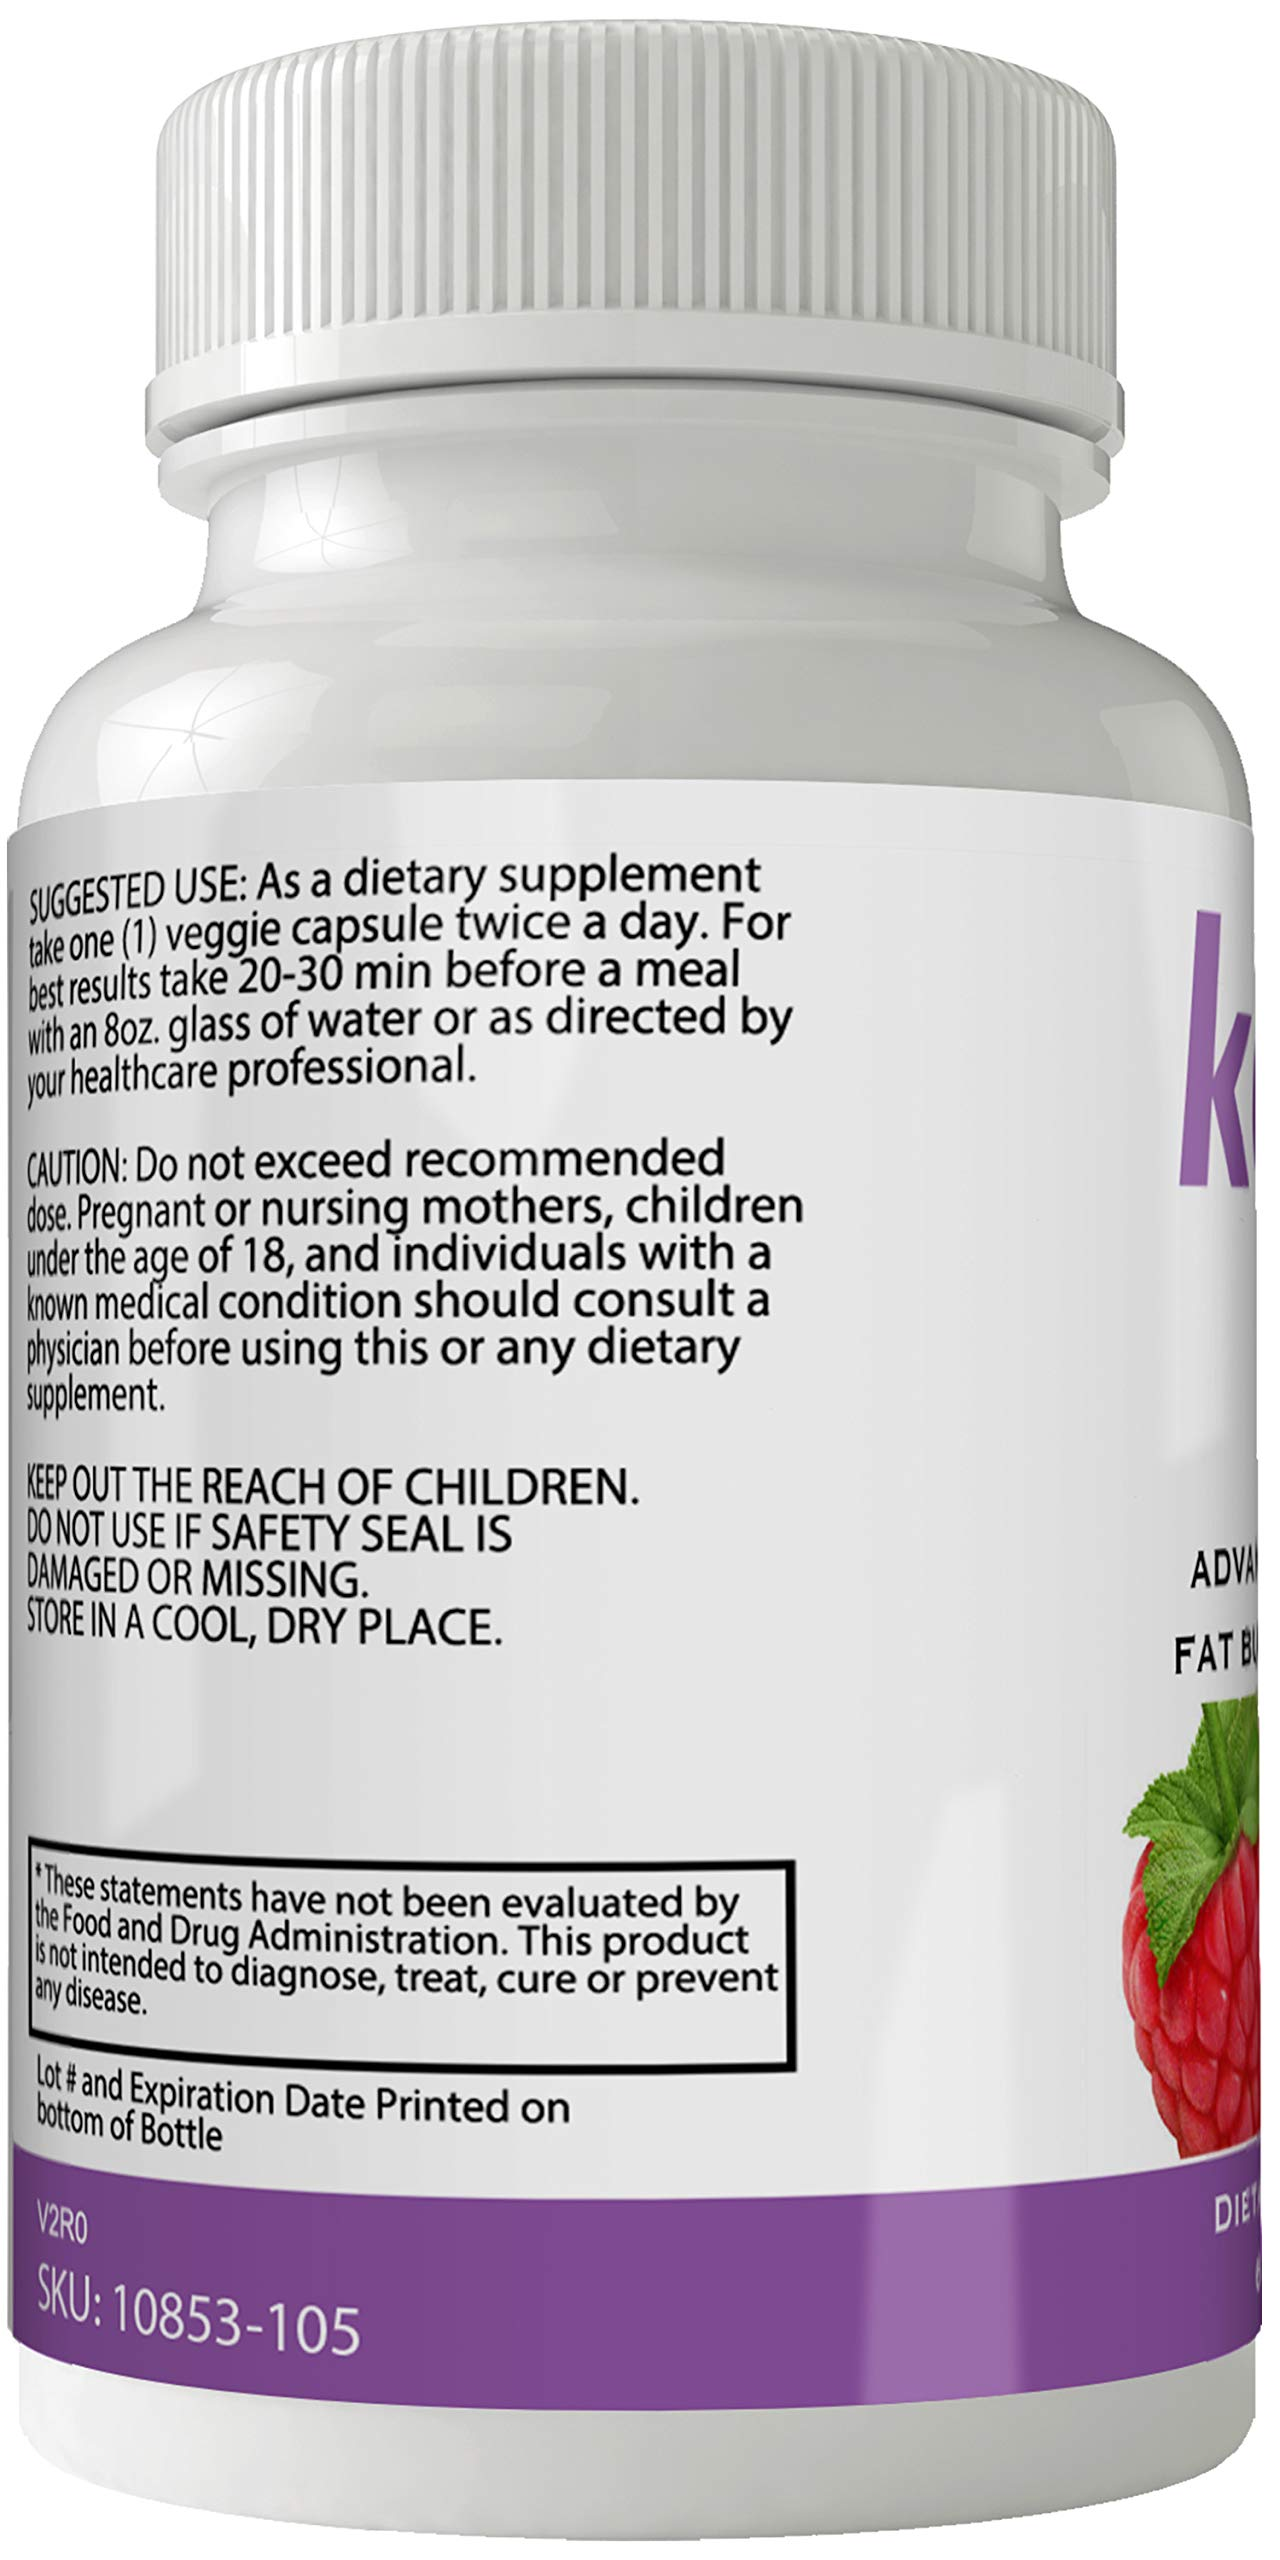 Keto Go Pills | Keto Go Weight Loss Pills | Keto Go It Works Supplements - Weightloss Lean Fat Burner | Advanced Thermogenic Rapid Fat Loss Supplement for Women and Men by nutra4health LLC (Image #3)